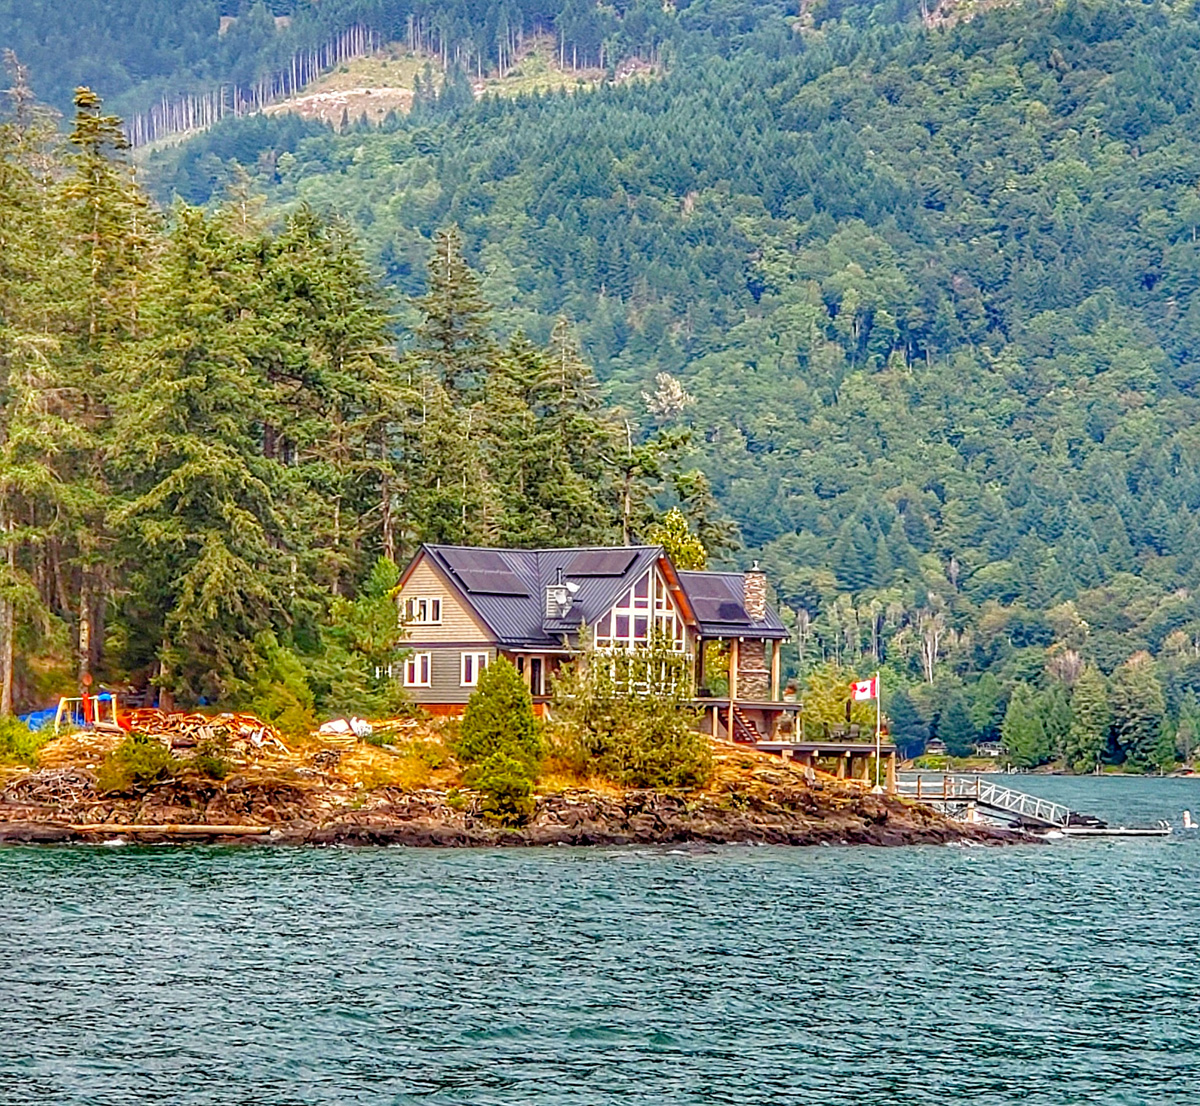 Harrison Lake house on the water